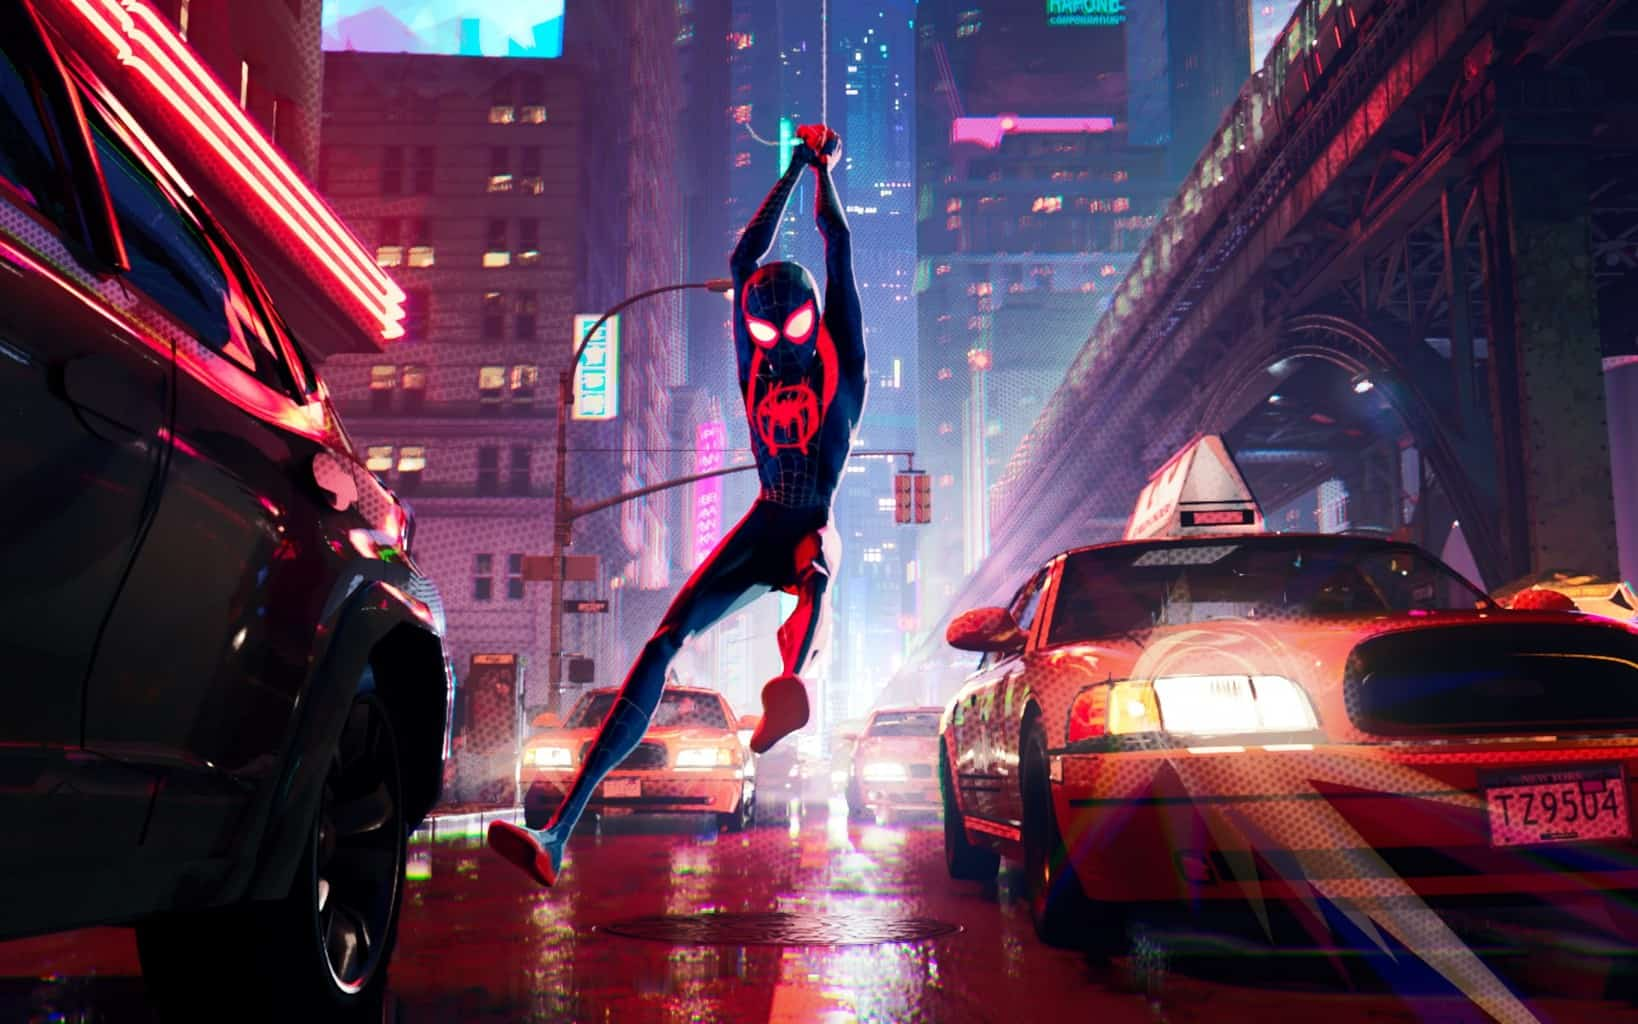 Spiderman: Into The Spider-Verse Swings To Number 1